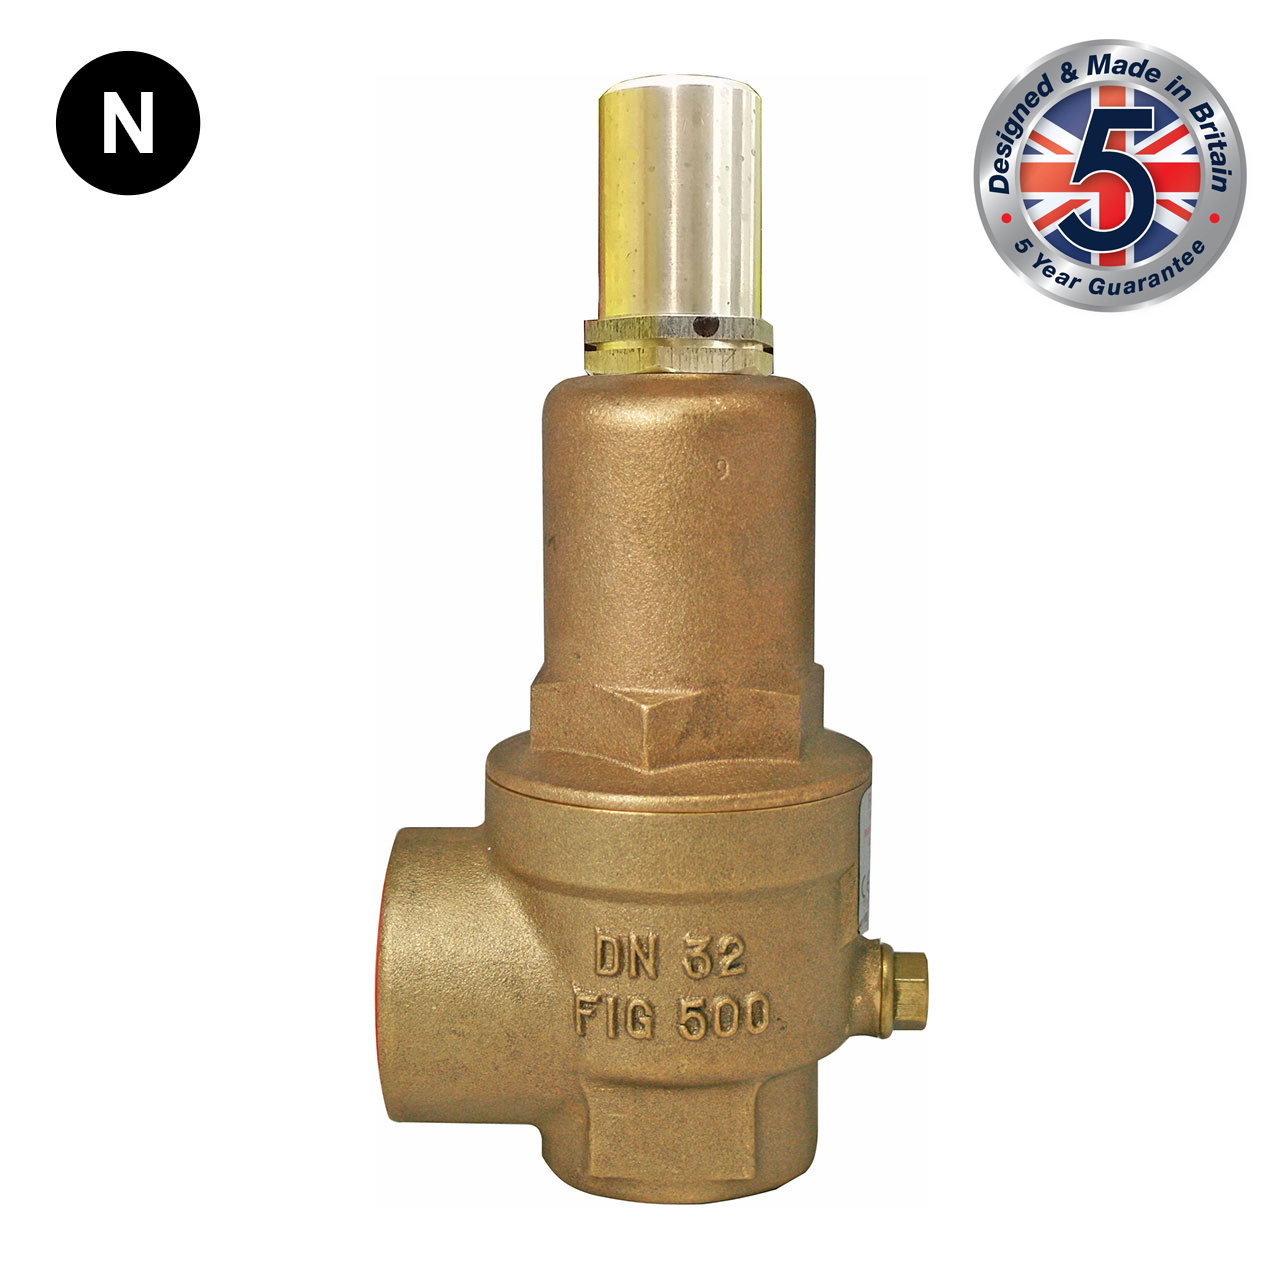 Nabic Fig 500L Relief Valve (With images) Relief valve